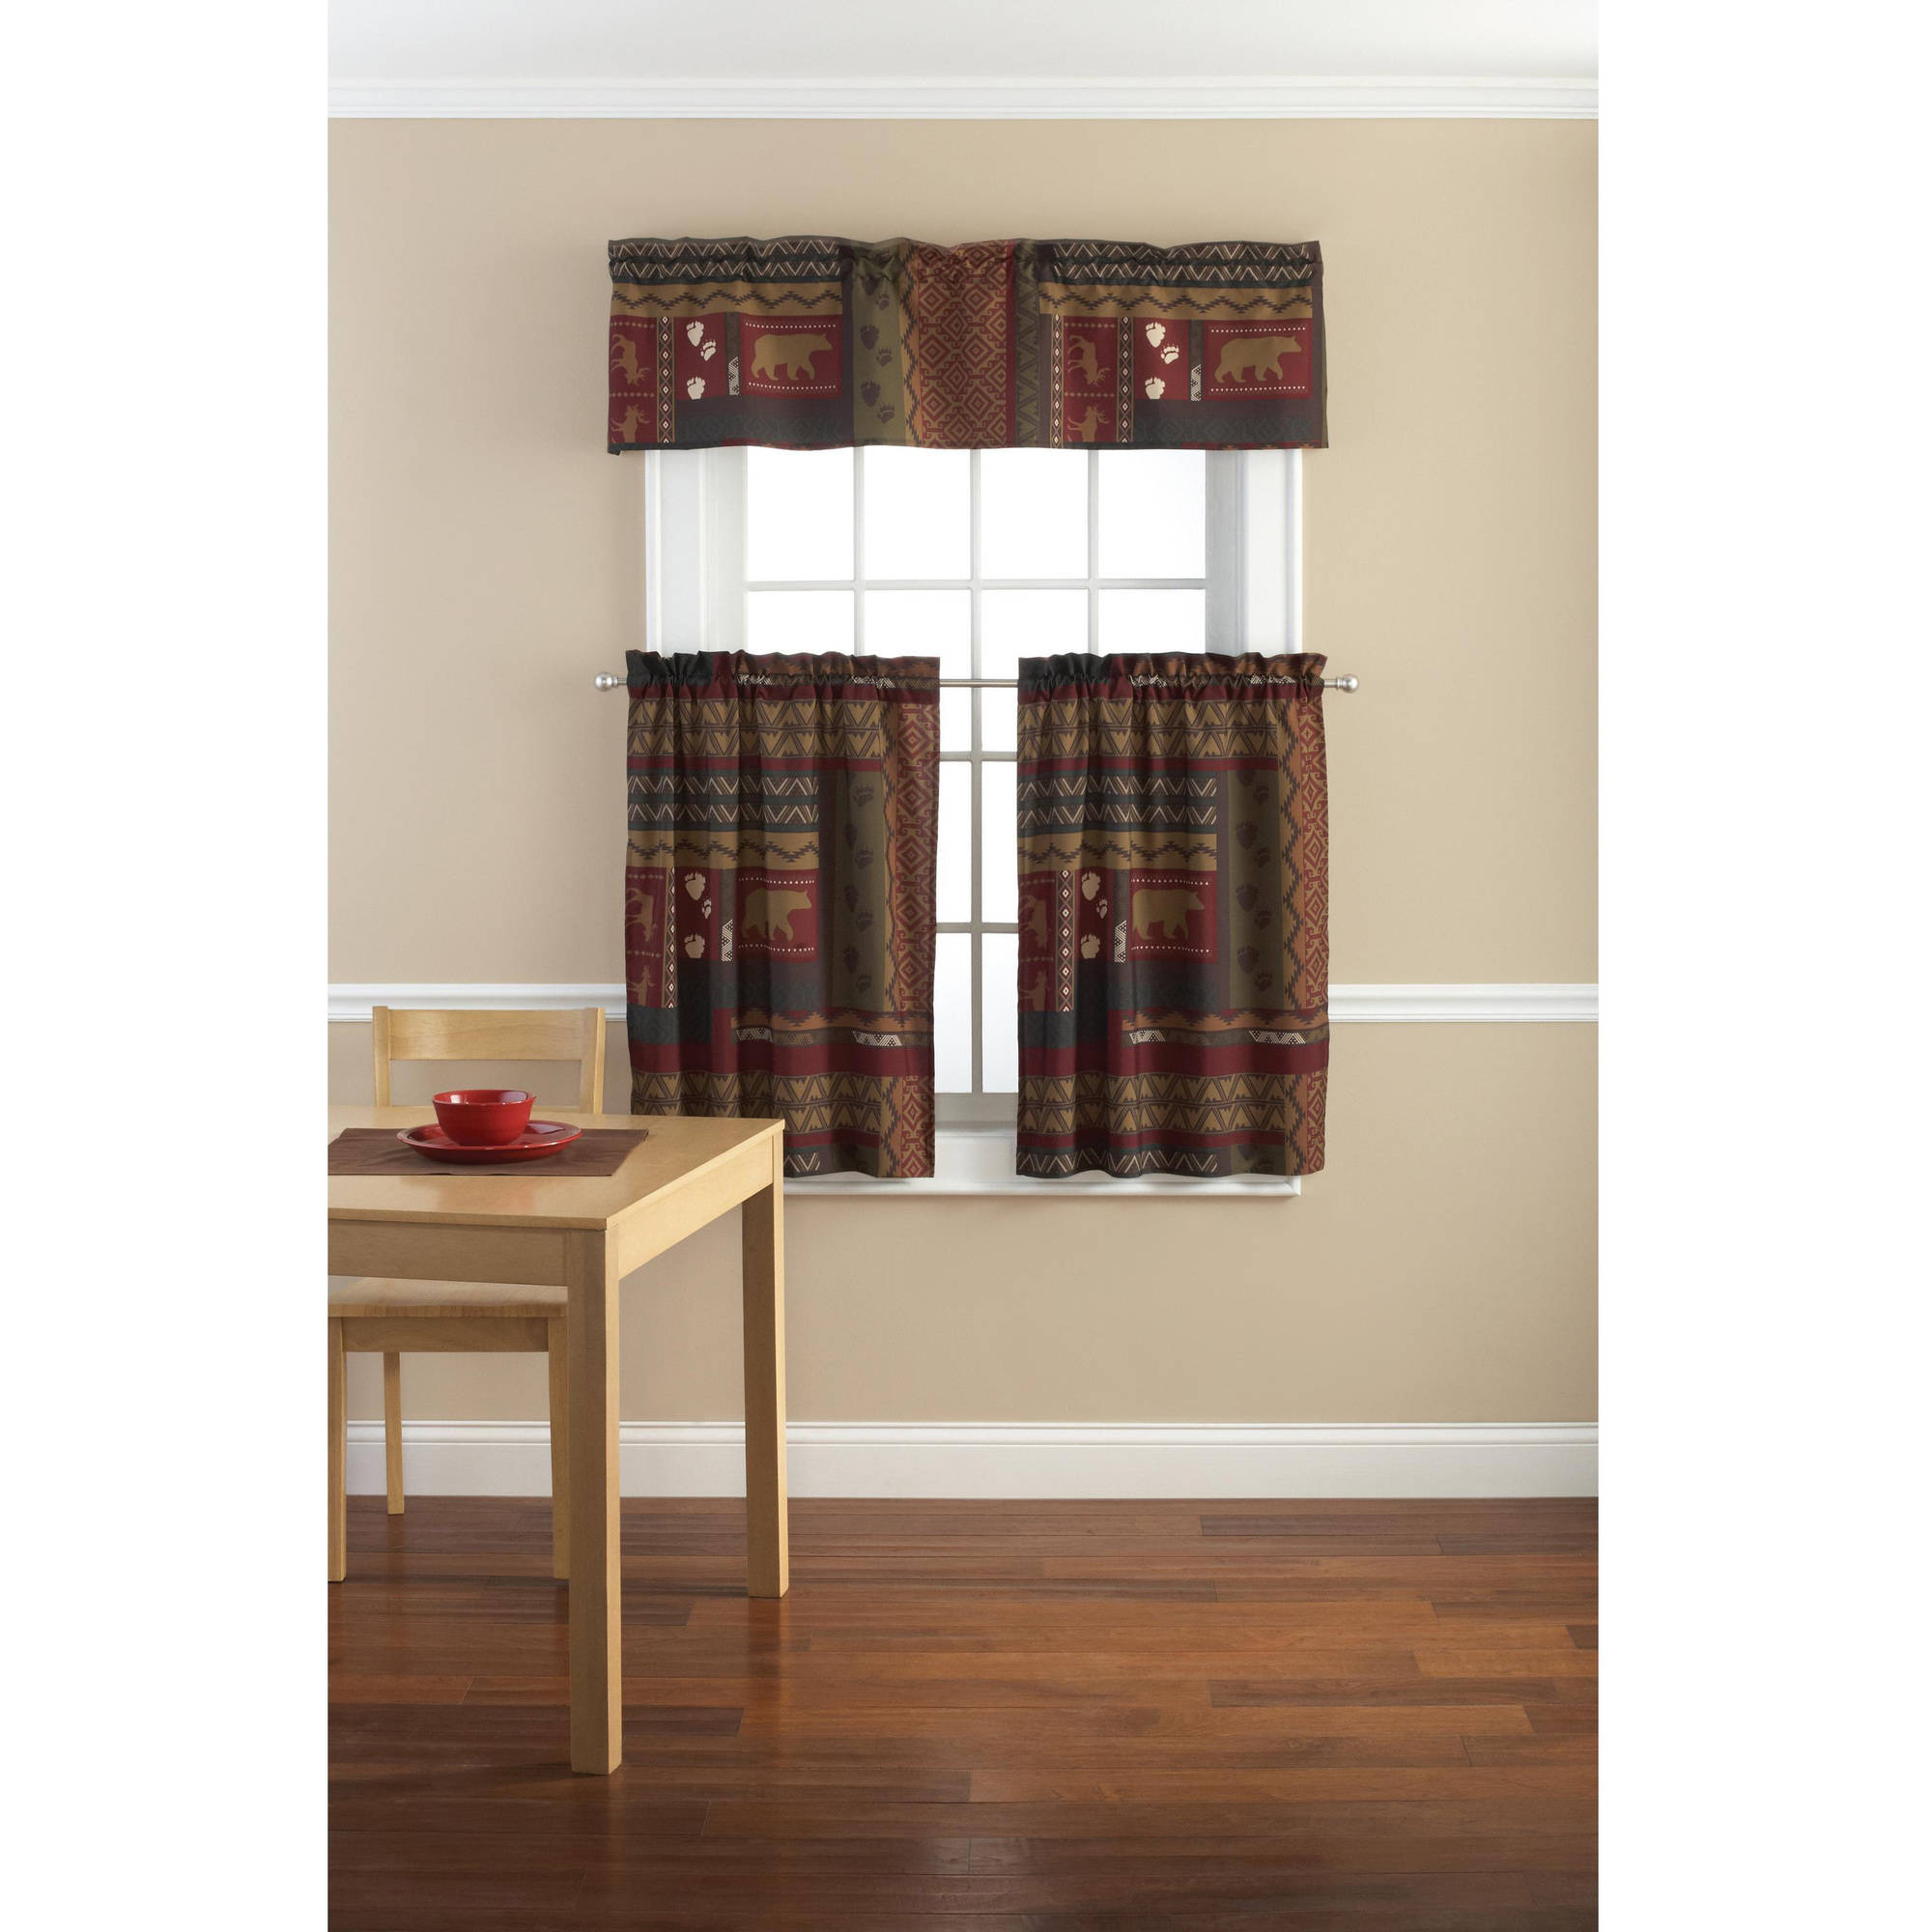 Mainstays Tahoe Cabin Printed Valance and Kitchen Curtains Set of